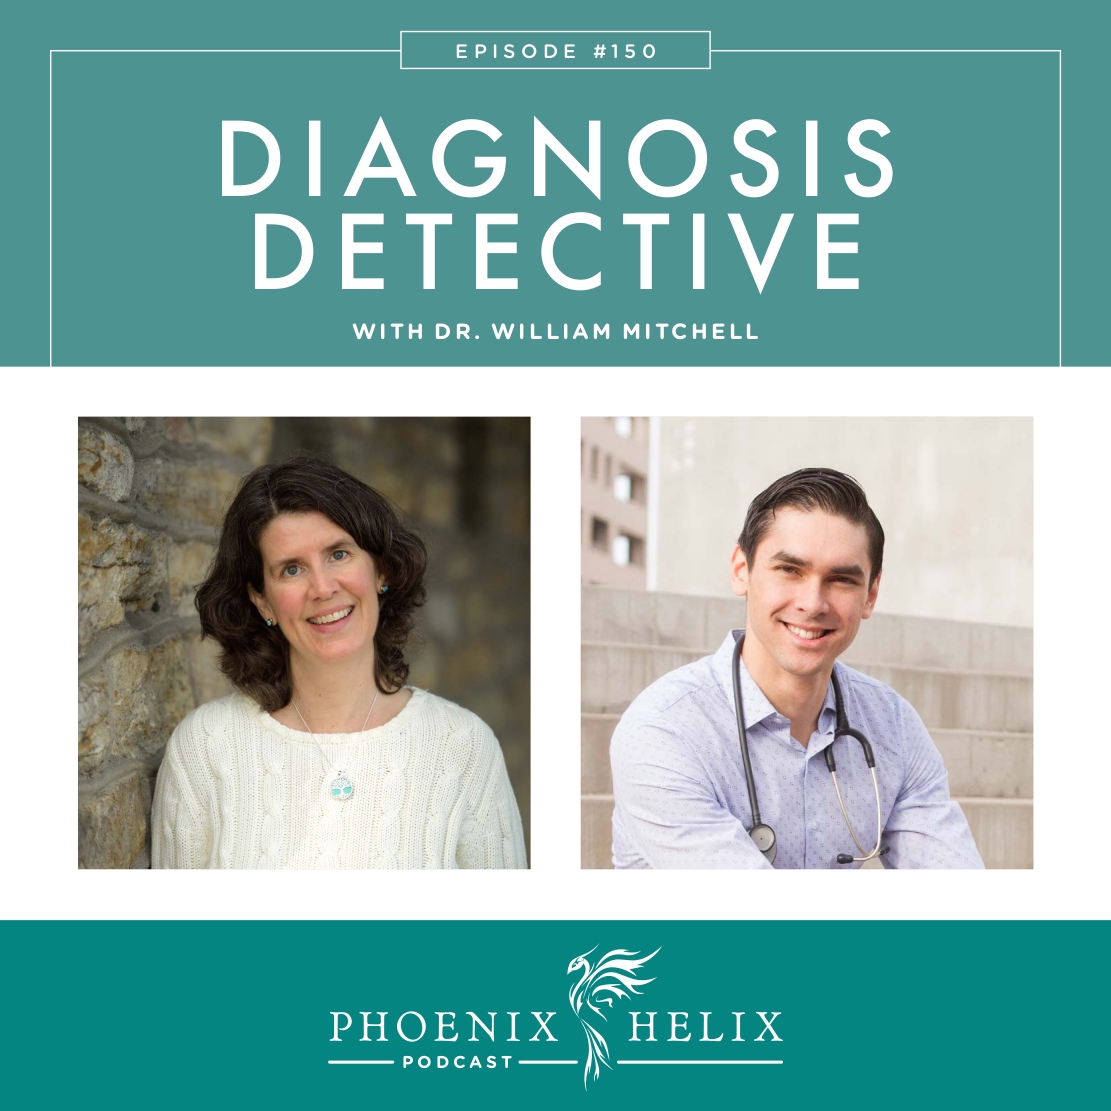 Diagnosis Detective with Dr. William Mitchell | Phoenix Helix Podcast